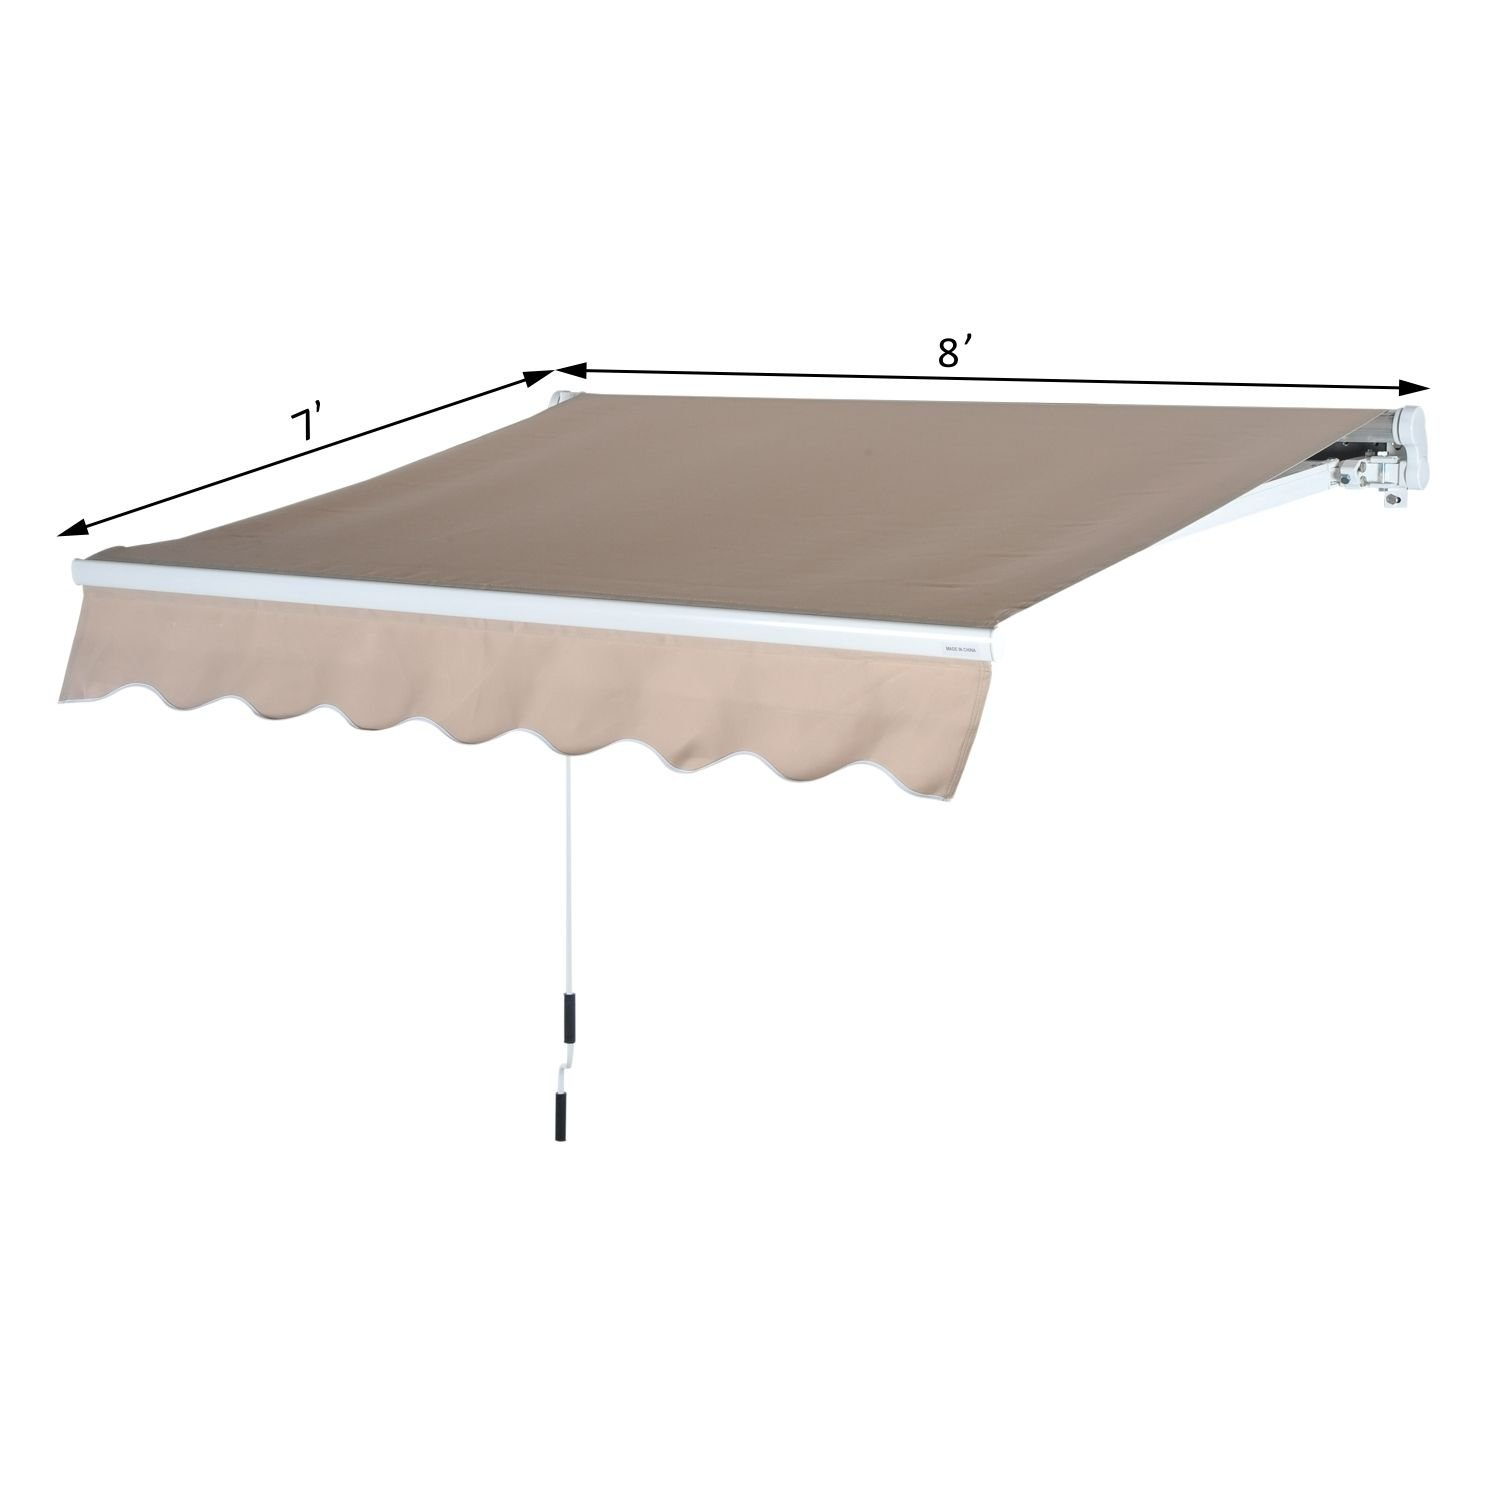 Outsunny 8' x 7' Patio Manual Retractable Sun Shade Awning - Cream by Outsunny (Image #6)